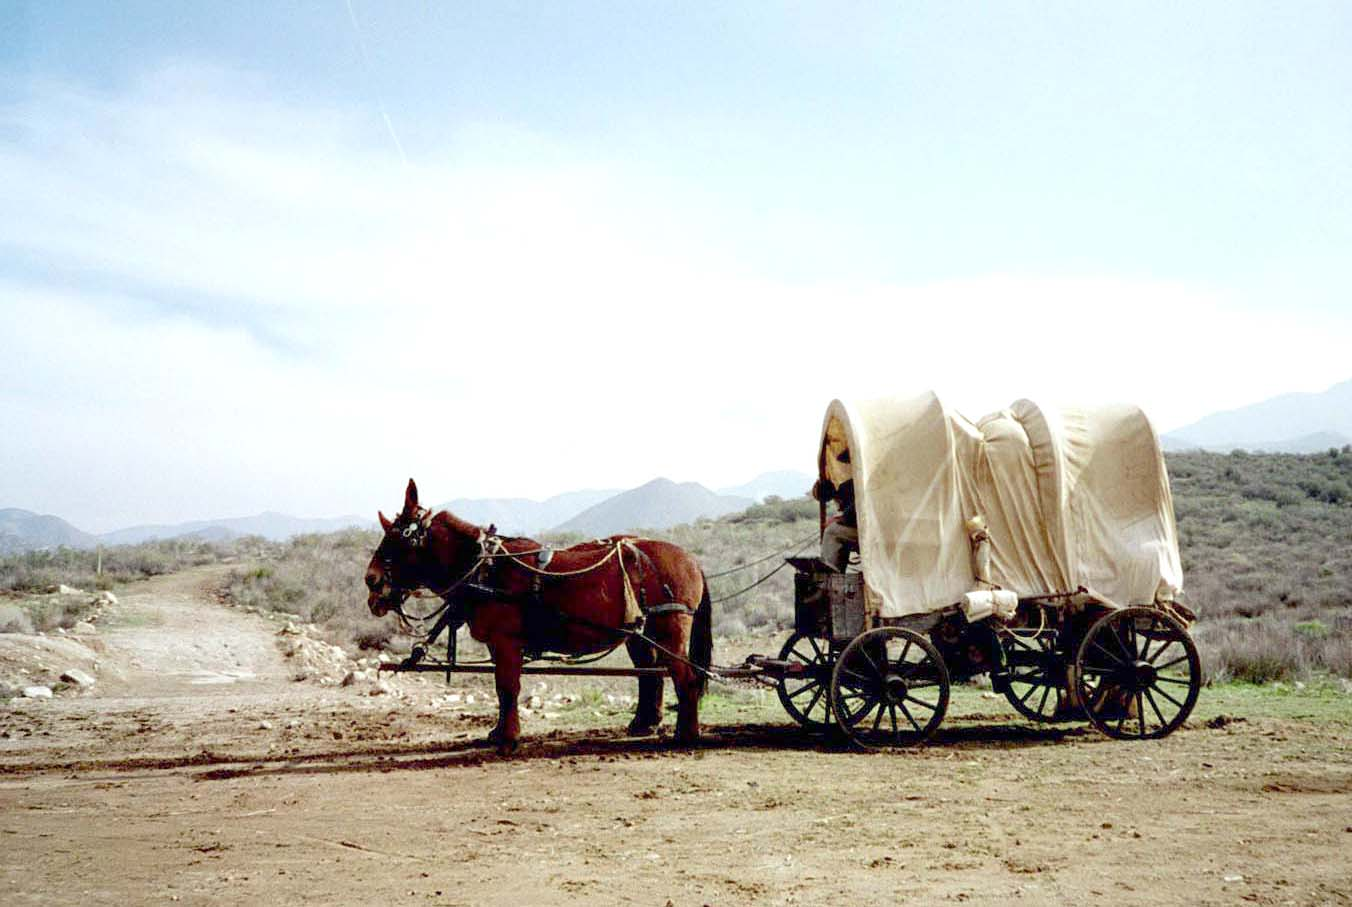 Covered wagon on set